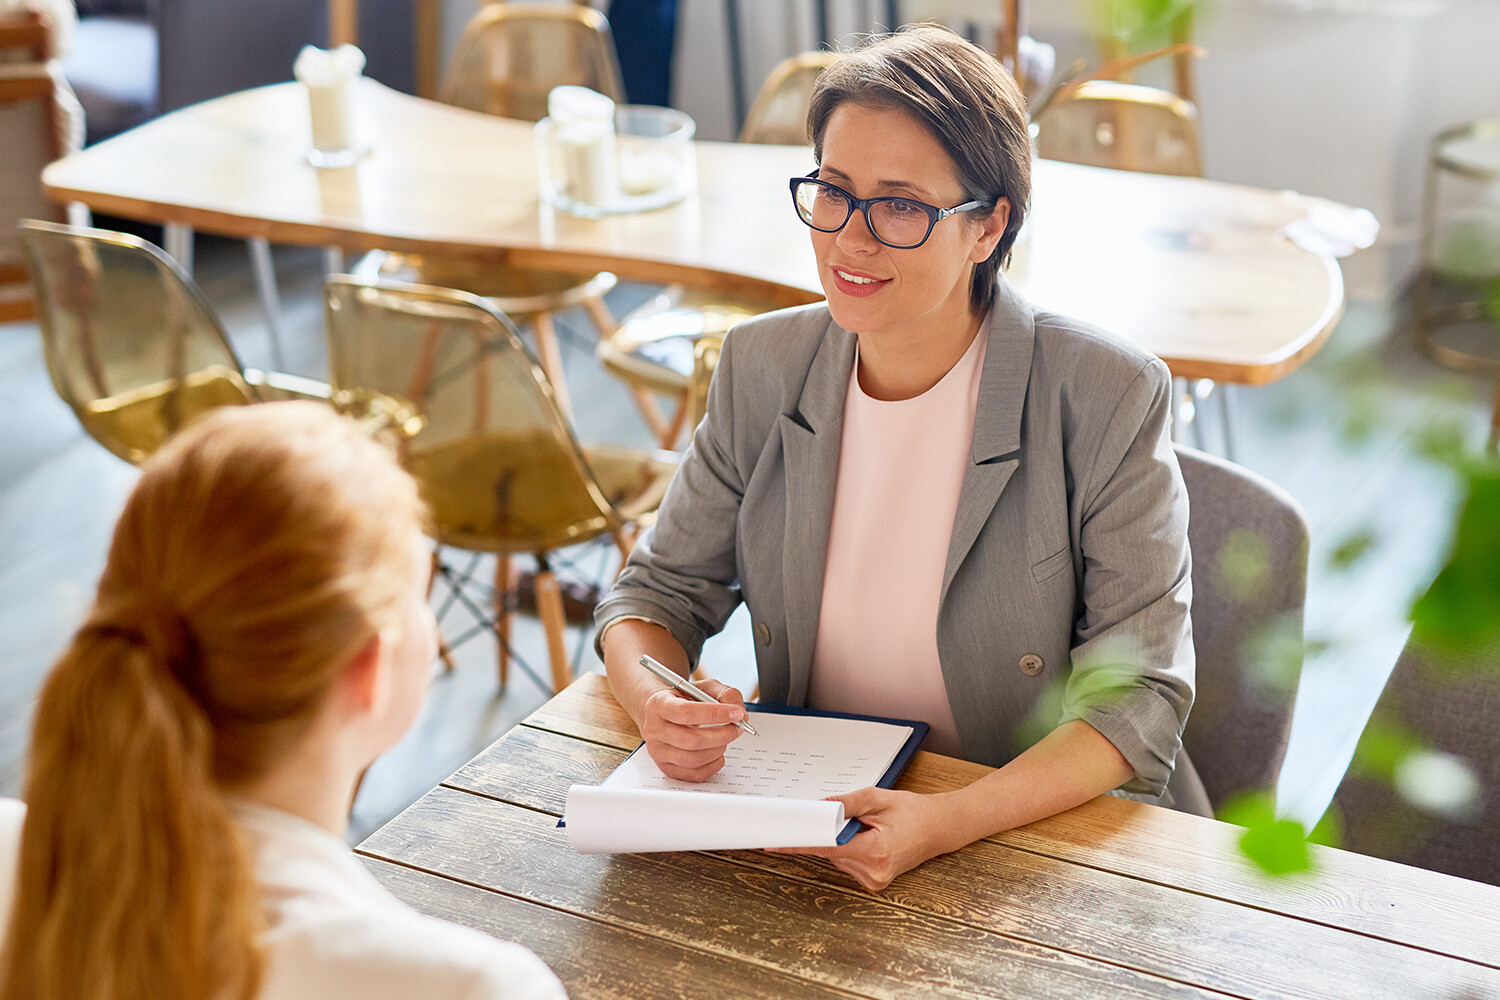 Female business owner in an interview